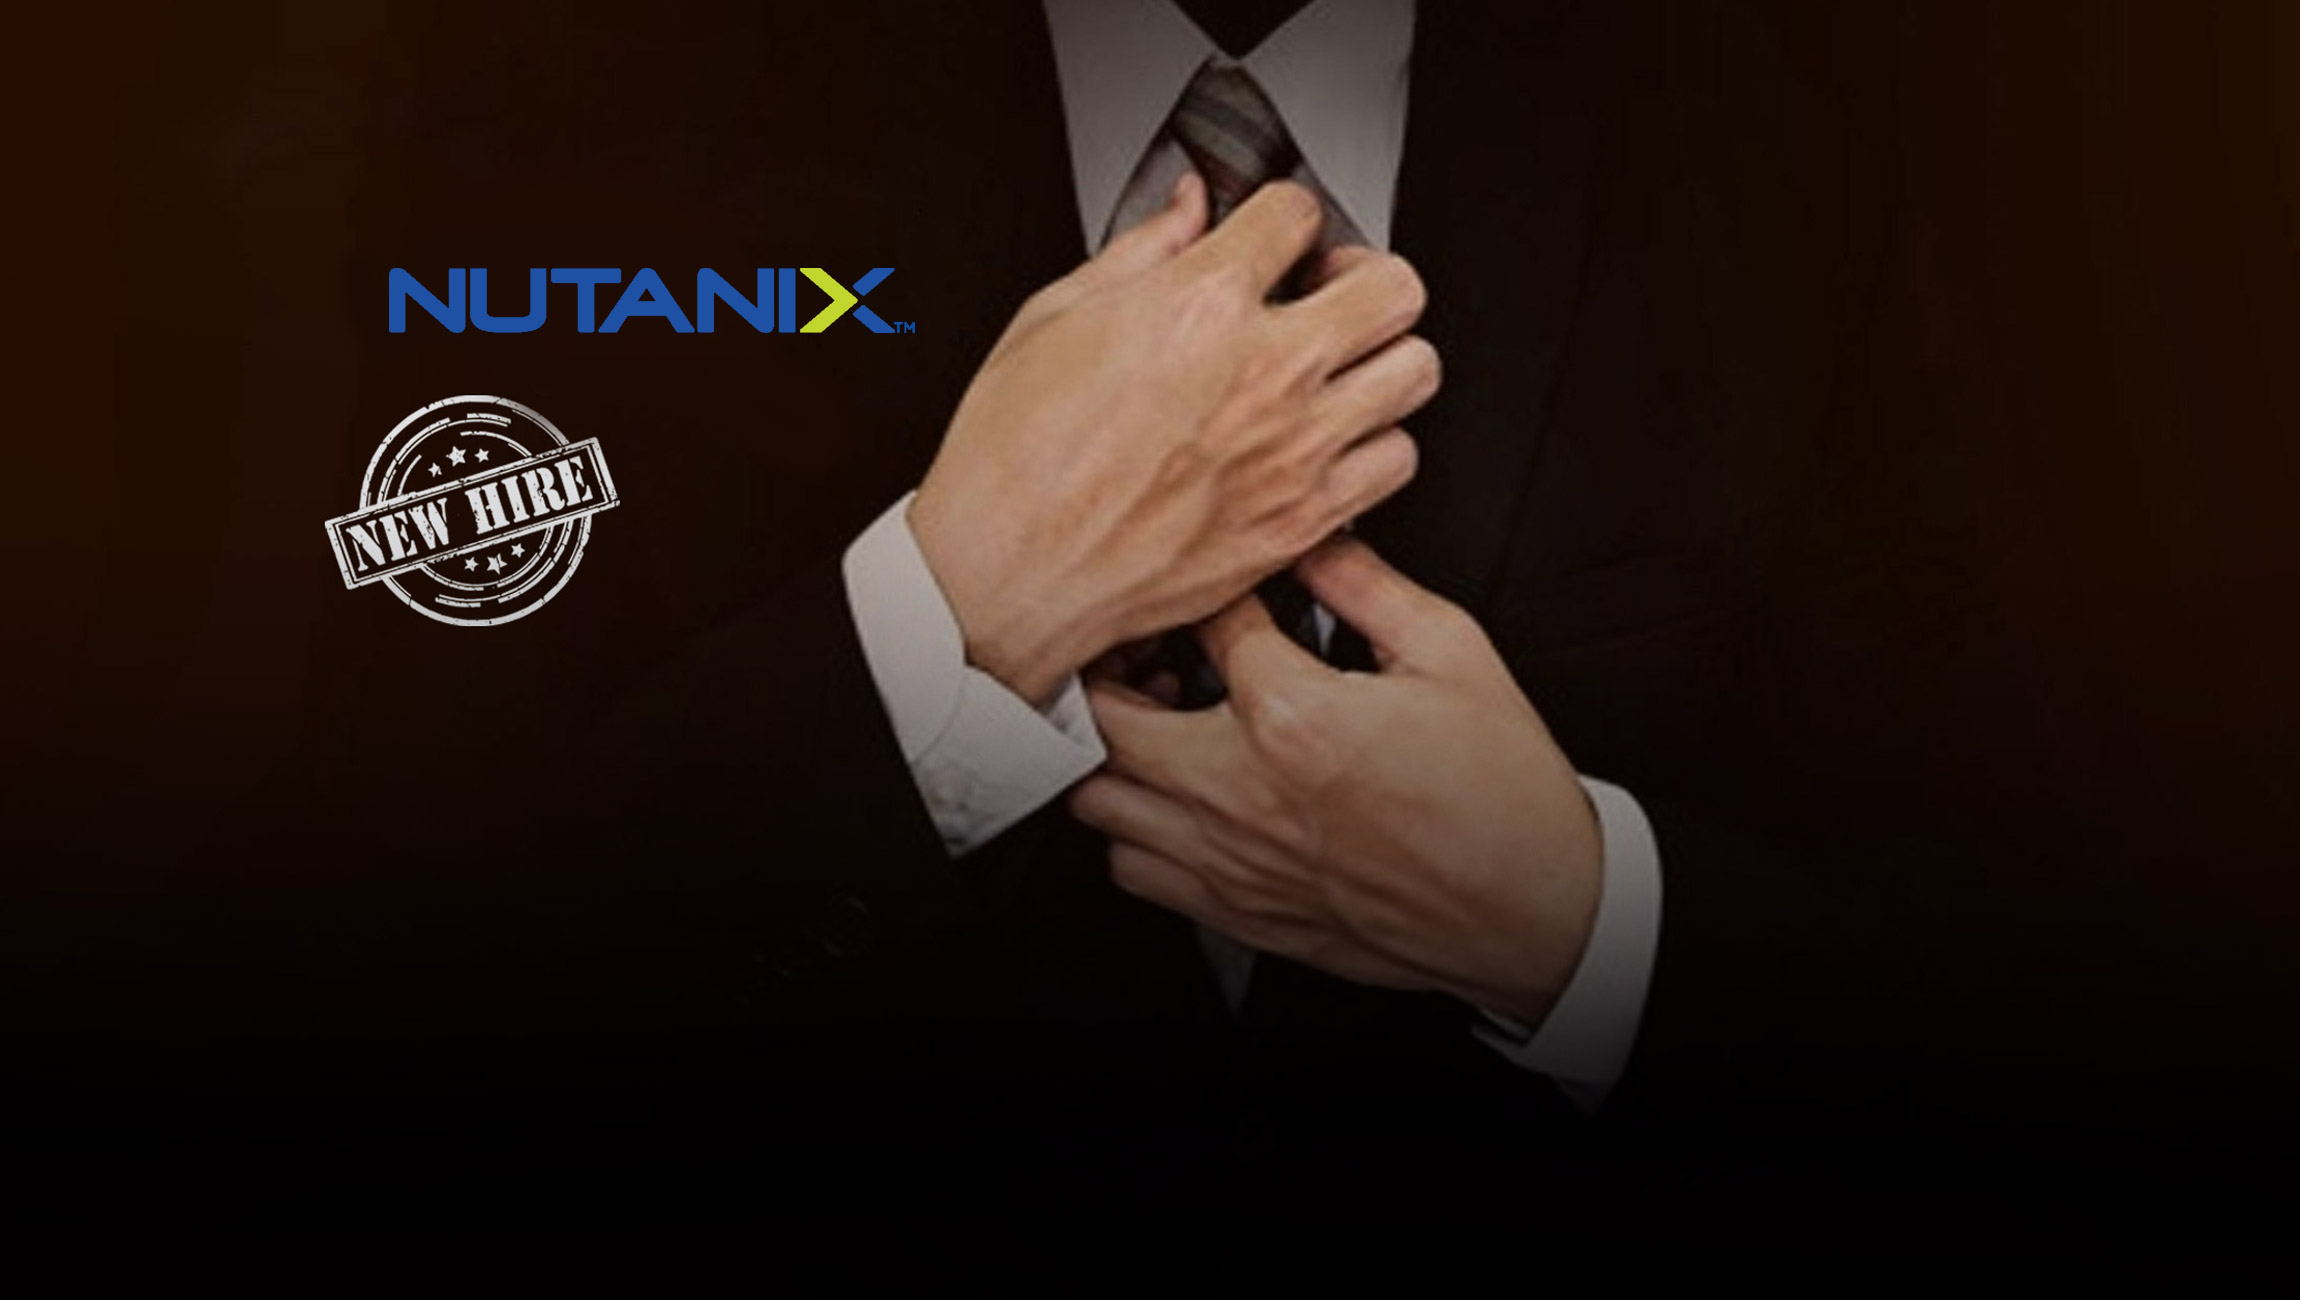 Christian Goffi Joins Nutanix as Vice President of Channel Sales for the Americas